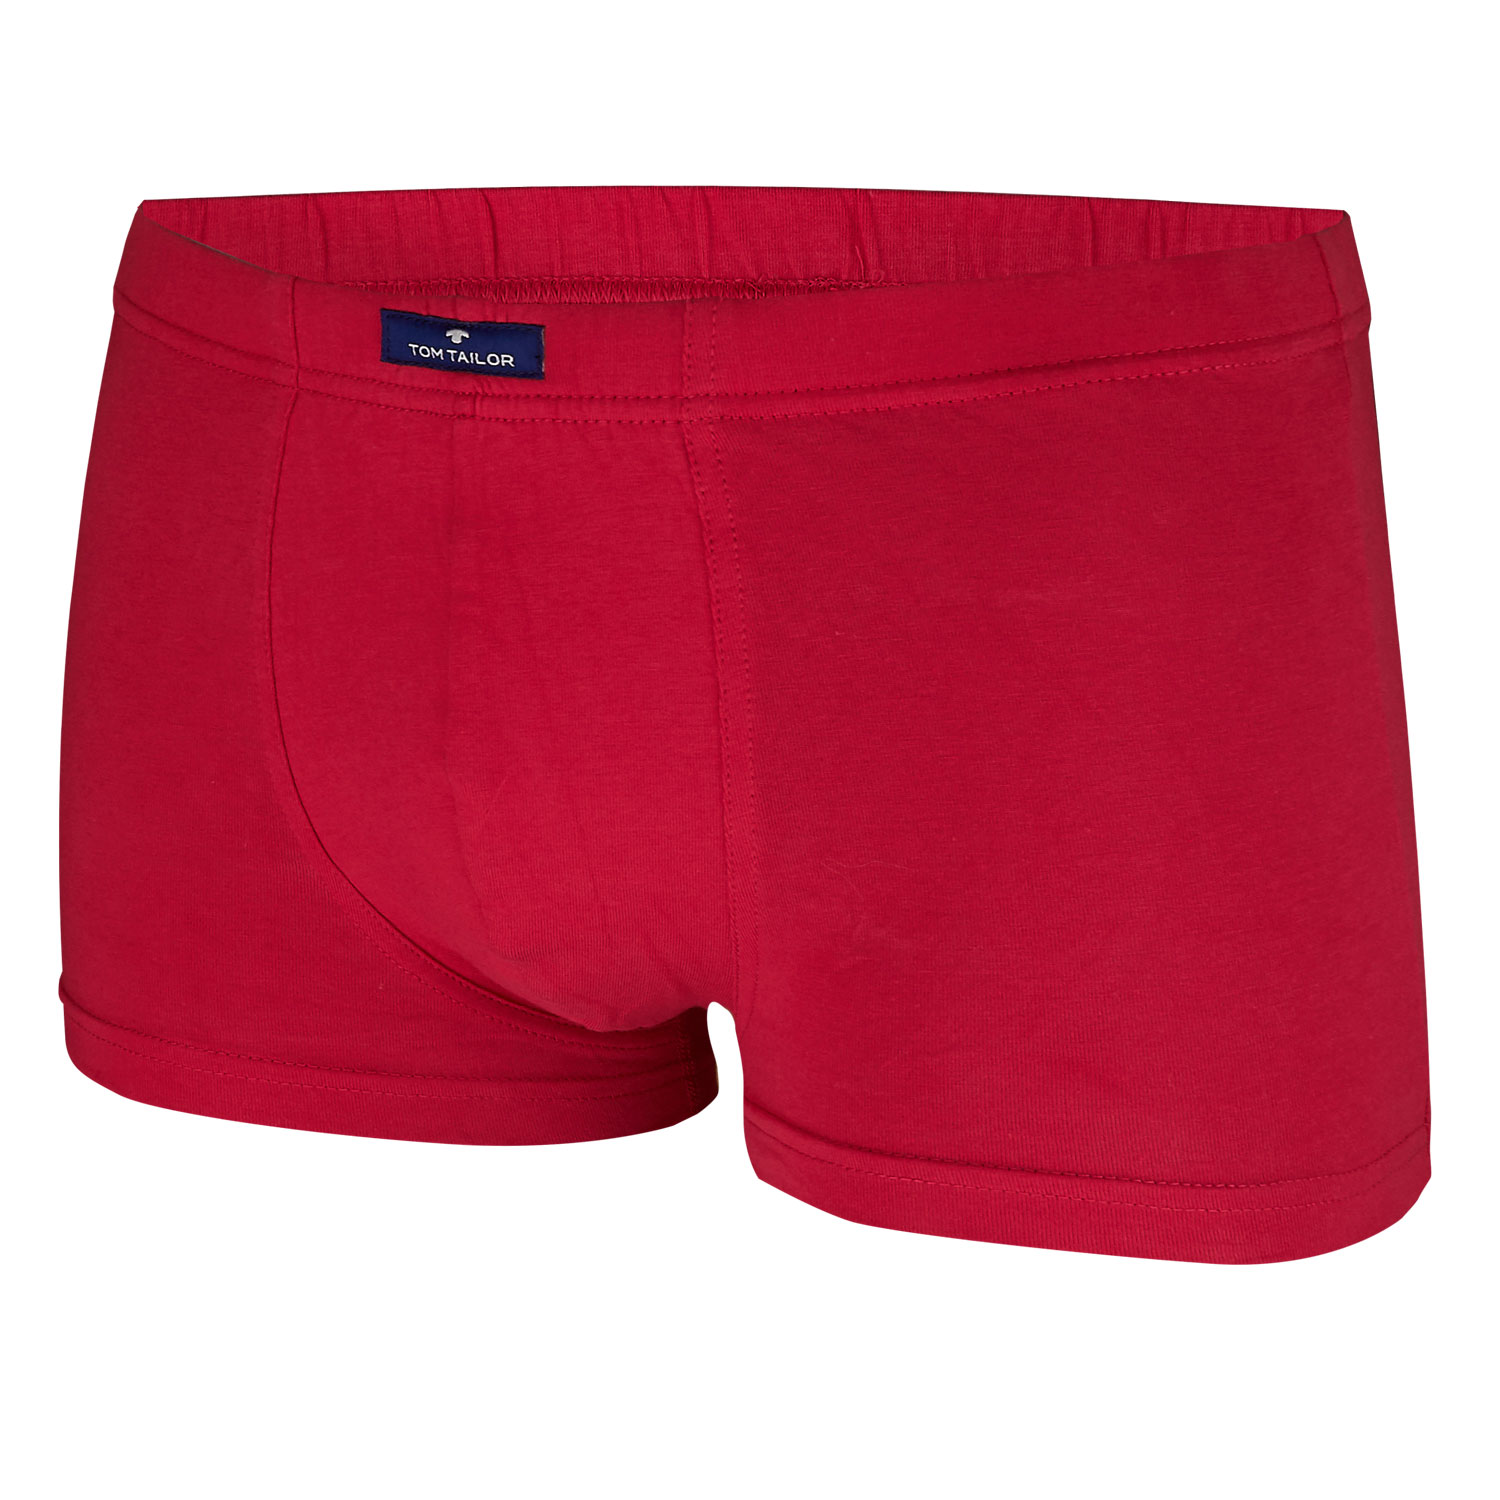 Tom Tailor Boxershorts 3er Pack 8710  – Bild 8